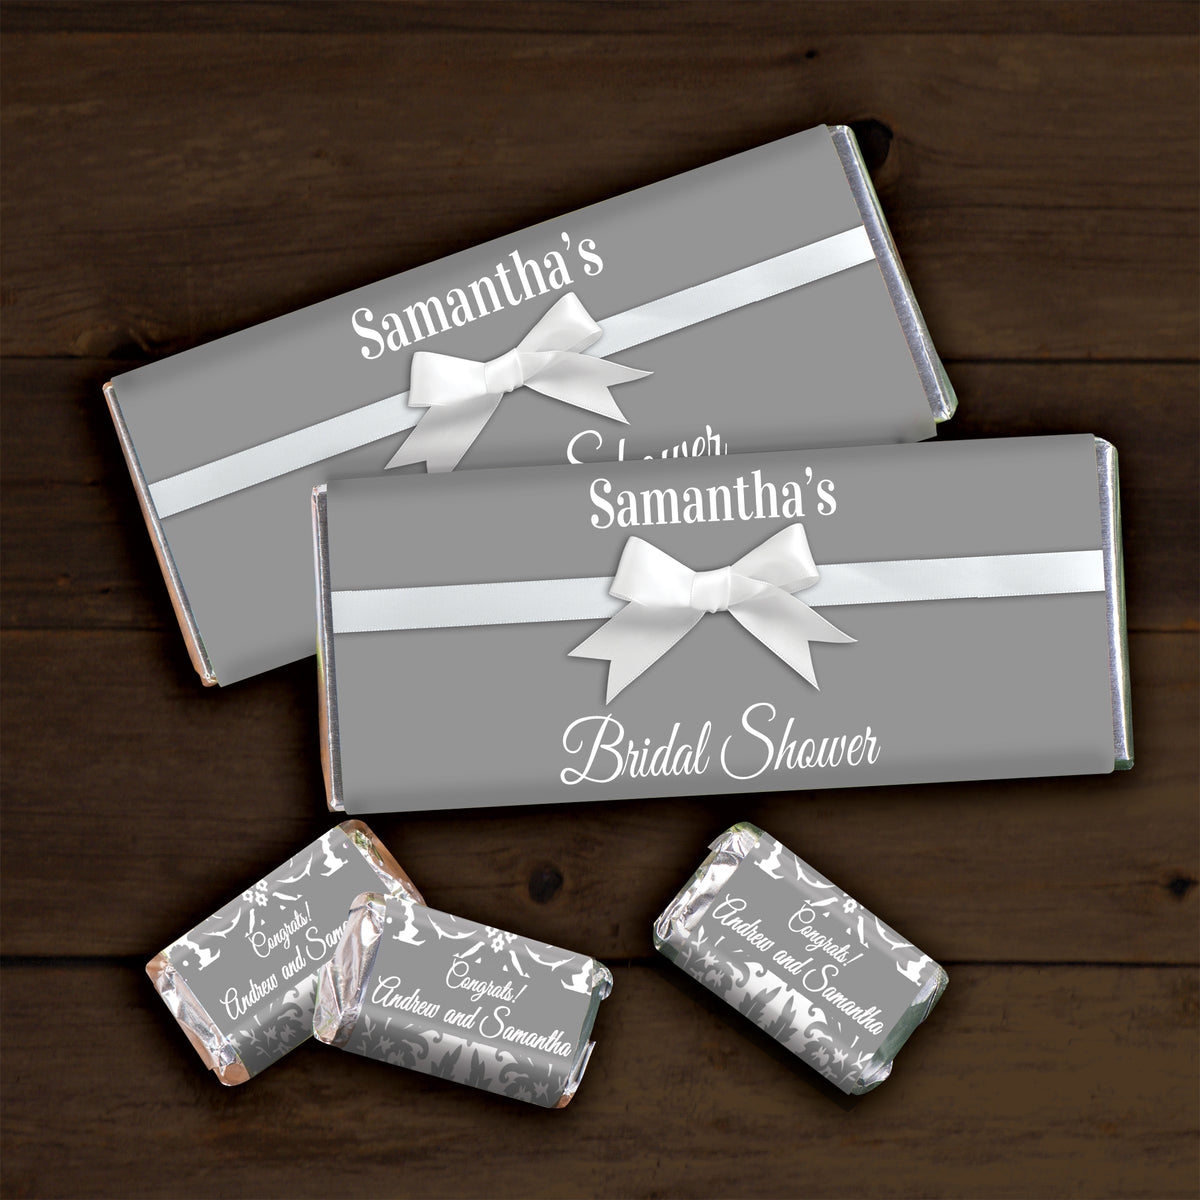 Hershey's Chocolate Simply Classic Personalized Candy Bars